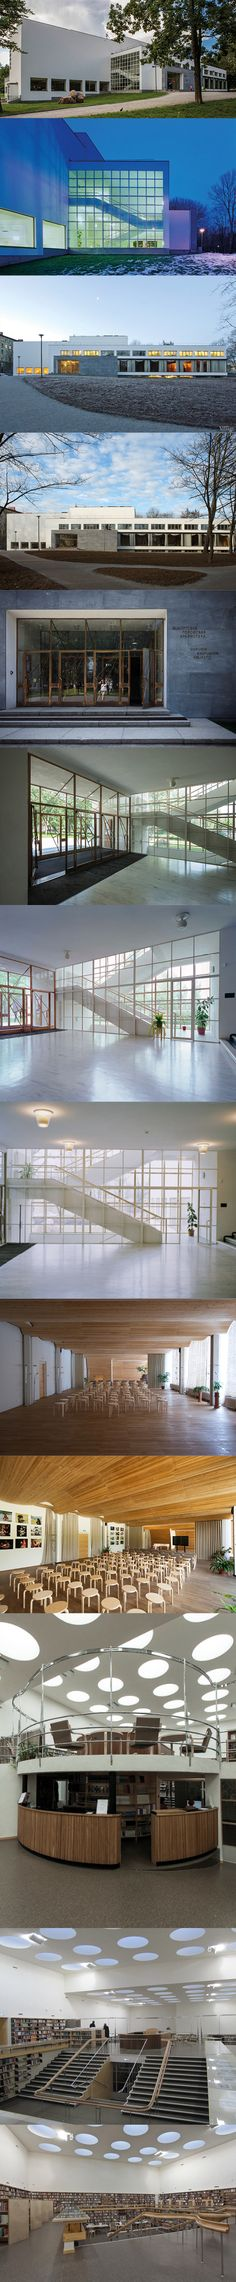 1933-35 Alvar Aalto - Vyborg Library  / Russia / Viipuri Finland / concrete glass wood / white / cultural